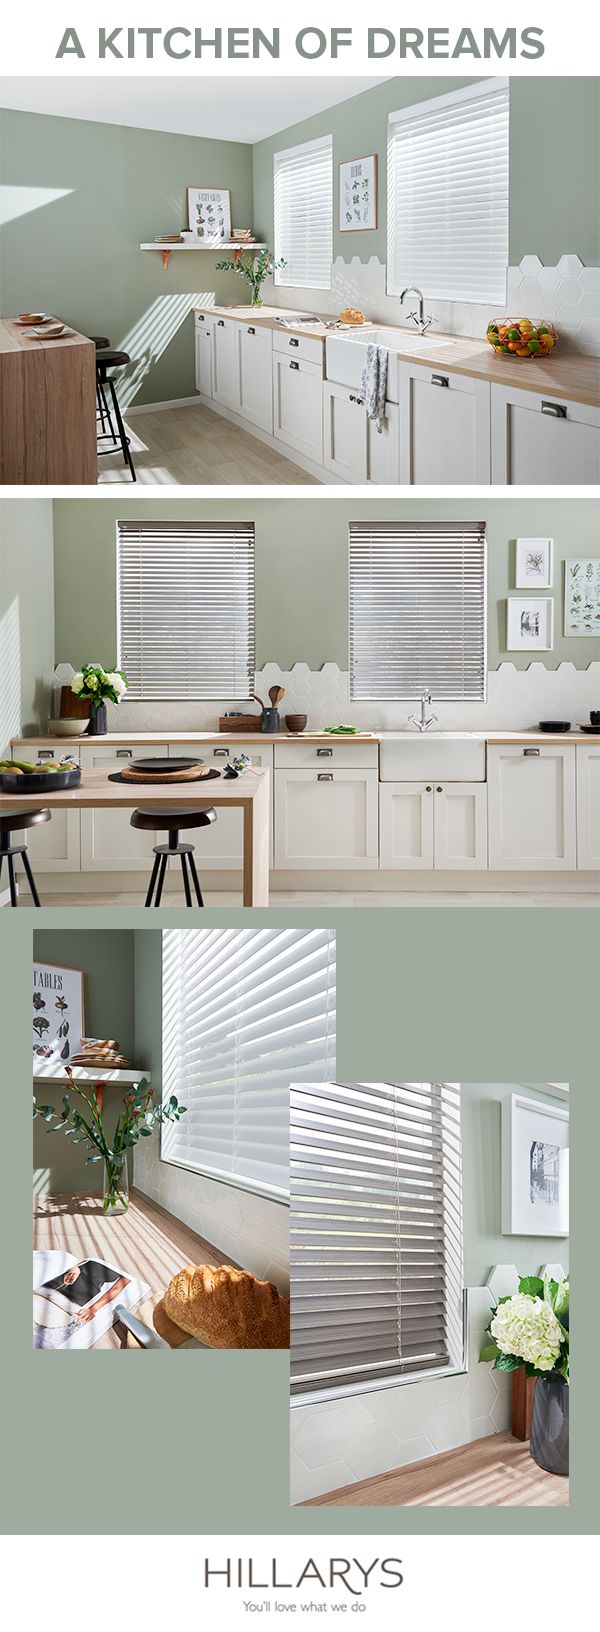 Dreaming of upgrading your kitchen? Make it a reality but don't forget the finishing touches with our extensive range of blinds, curtains or shutters.